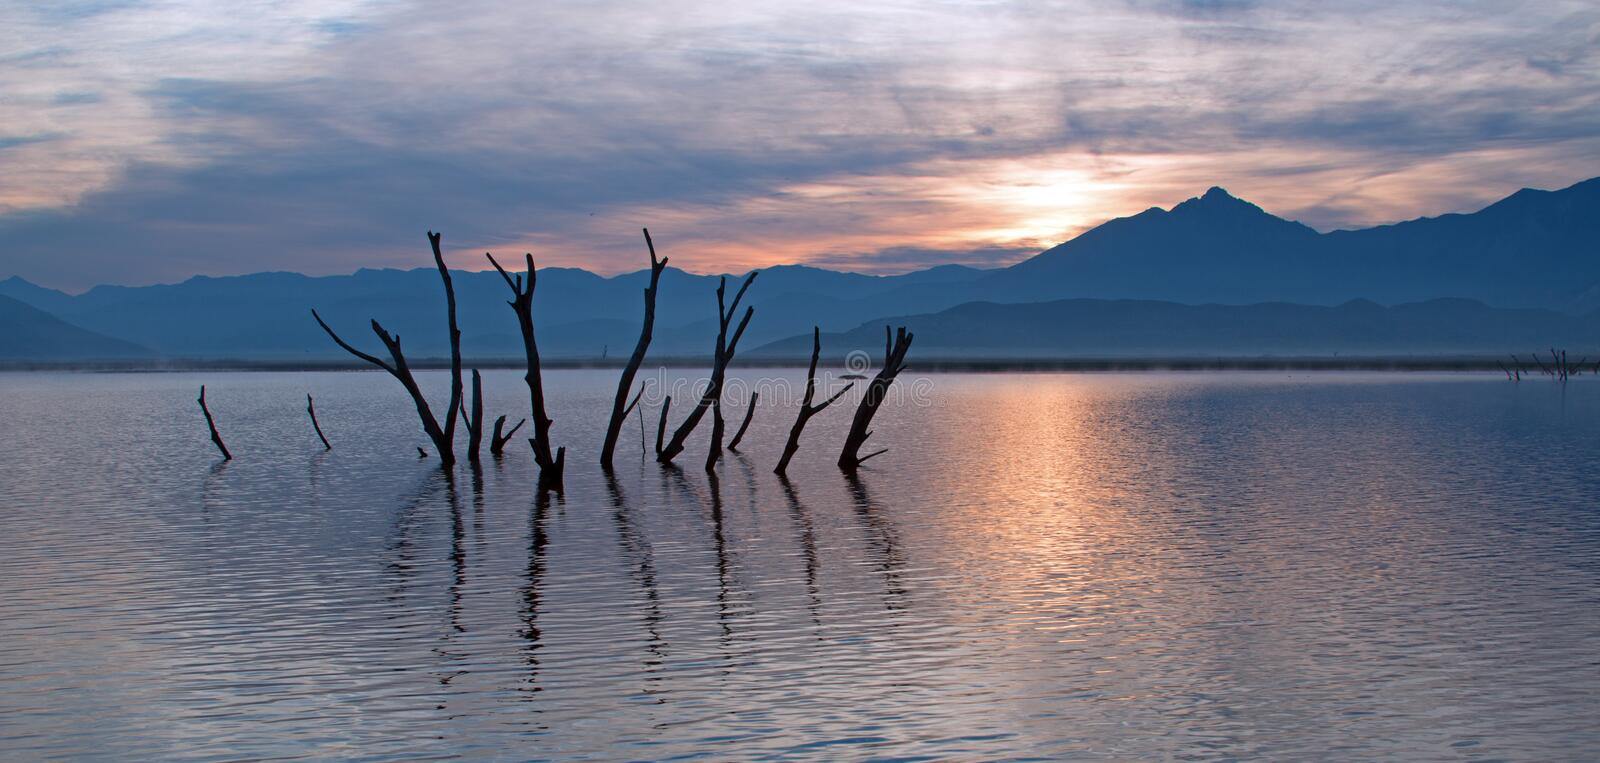 Download Dead Tree Trunks And Branches Poking Out Of Drought Stricken Lake Isabella At Sunrise In The Sierra Nevada Mountains In Central Ca Stock Image - Image of nevadas, cloudscape: 93659287